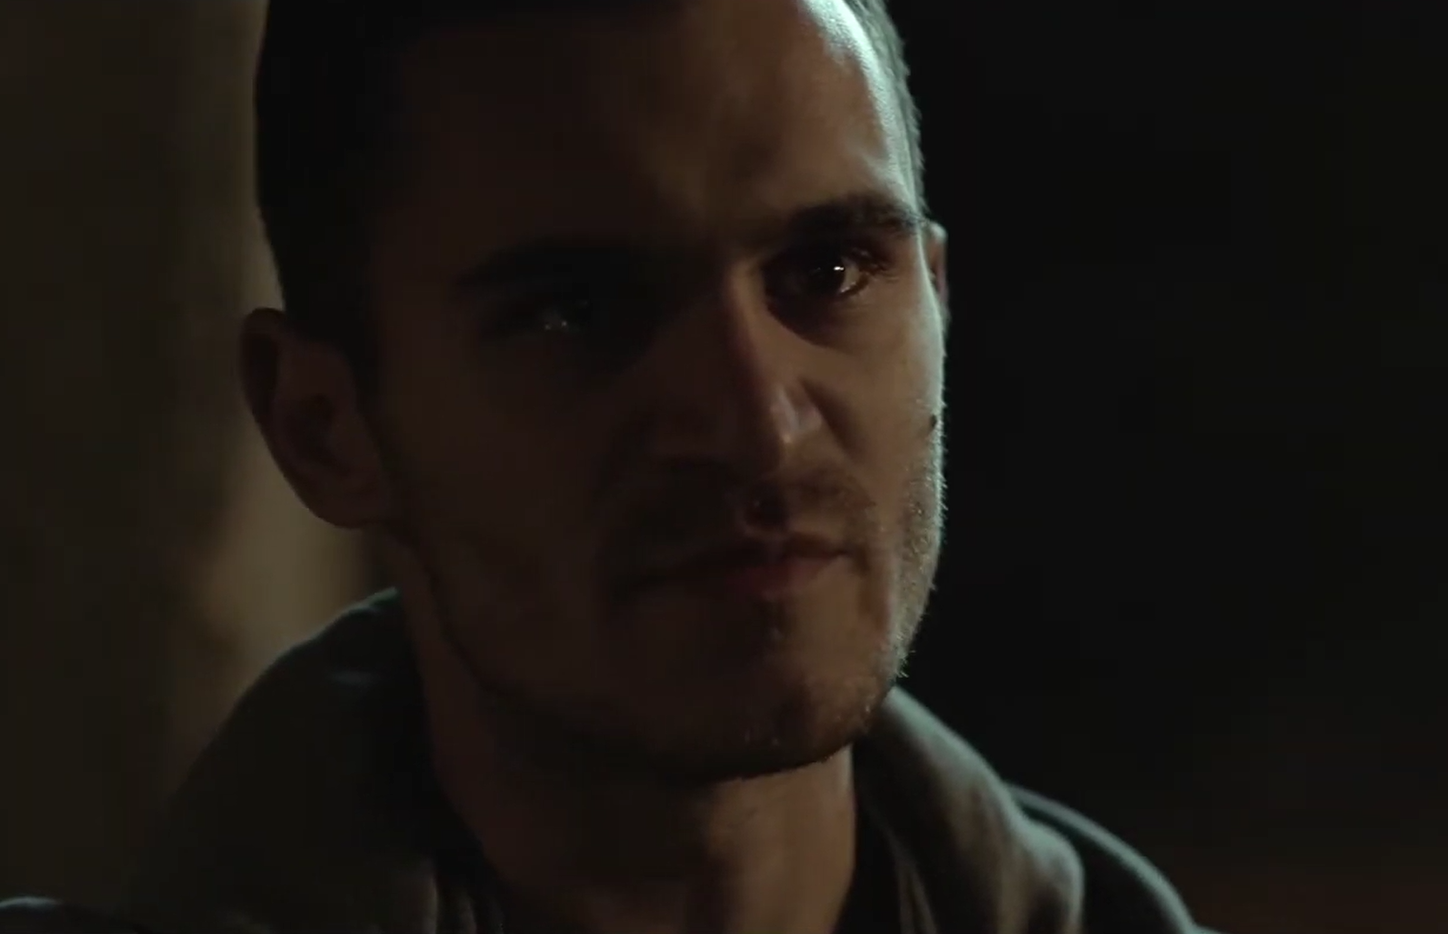 Bulgarian Actor Julian Kostov with a Role in a Netflix Series